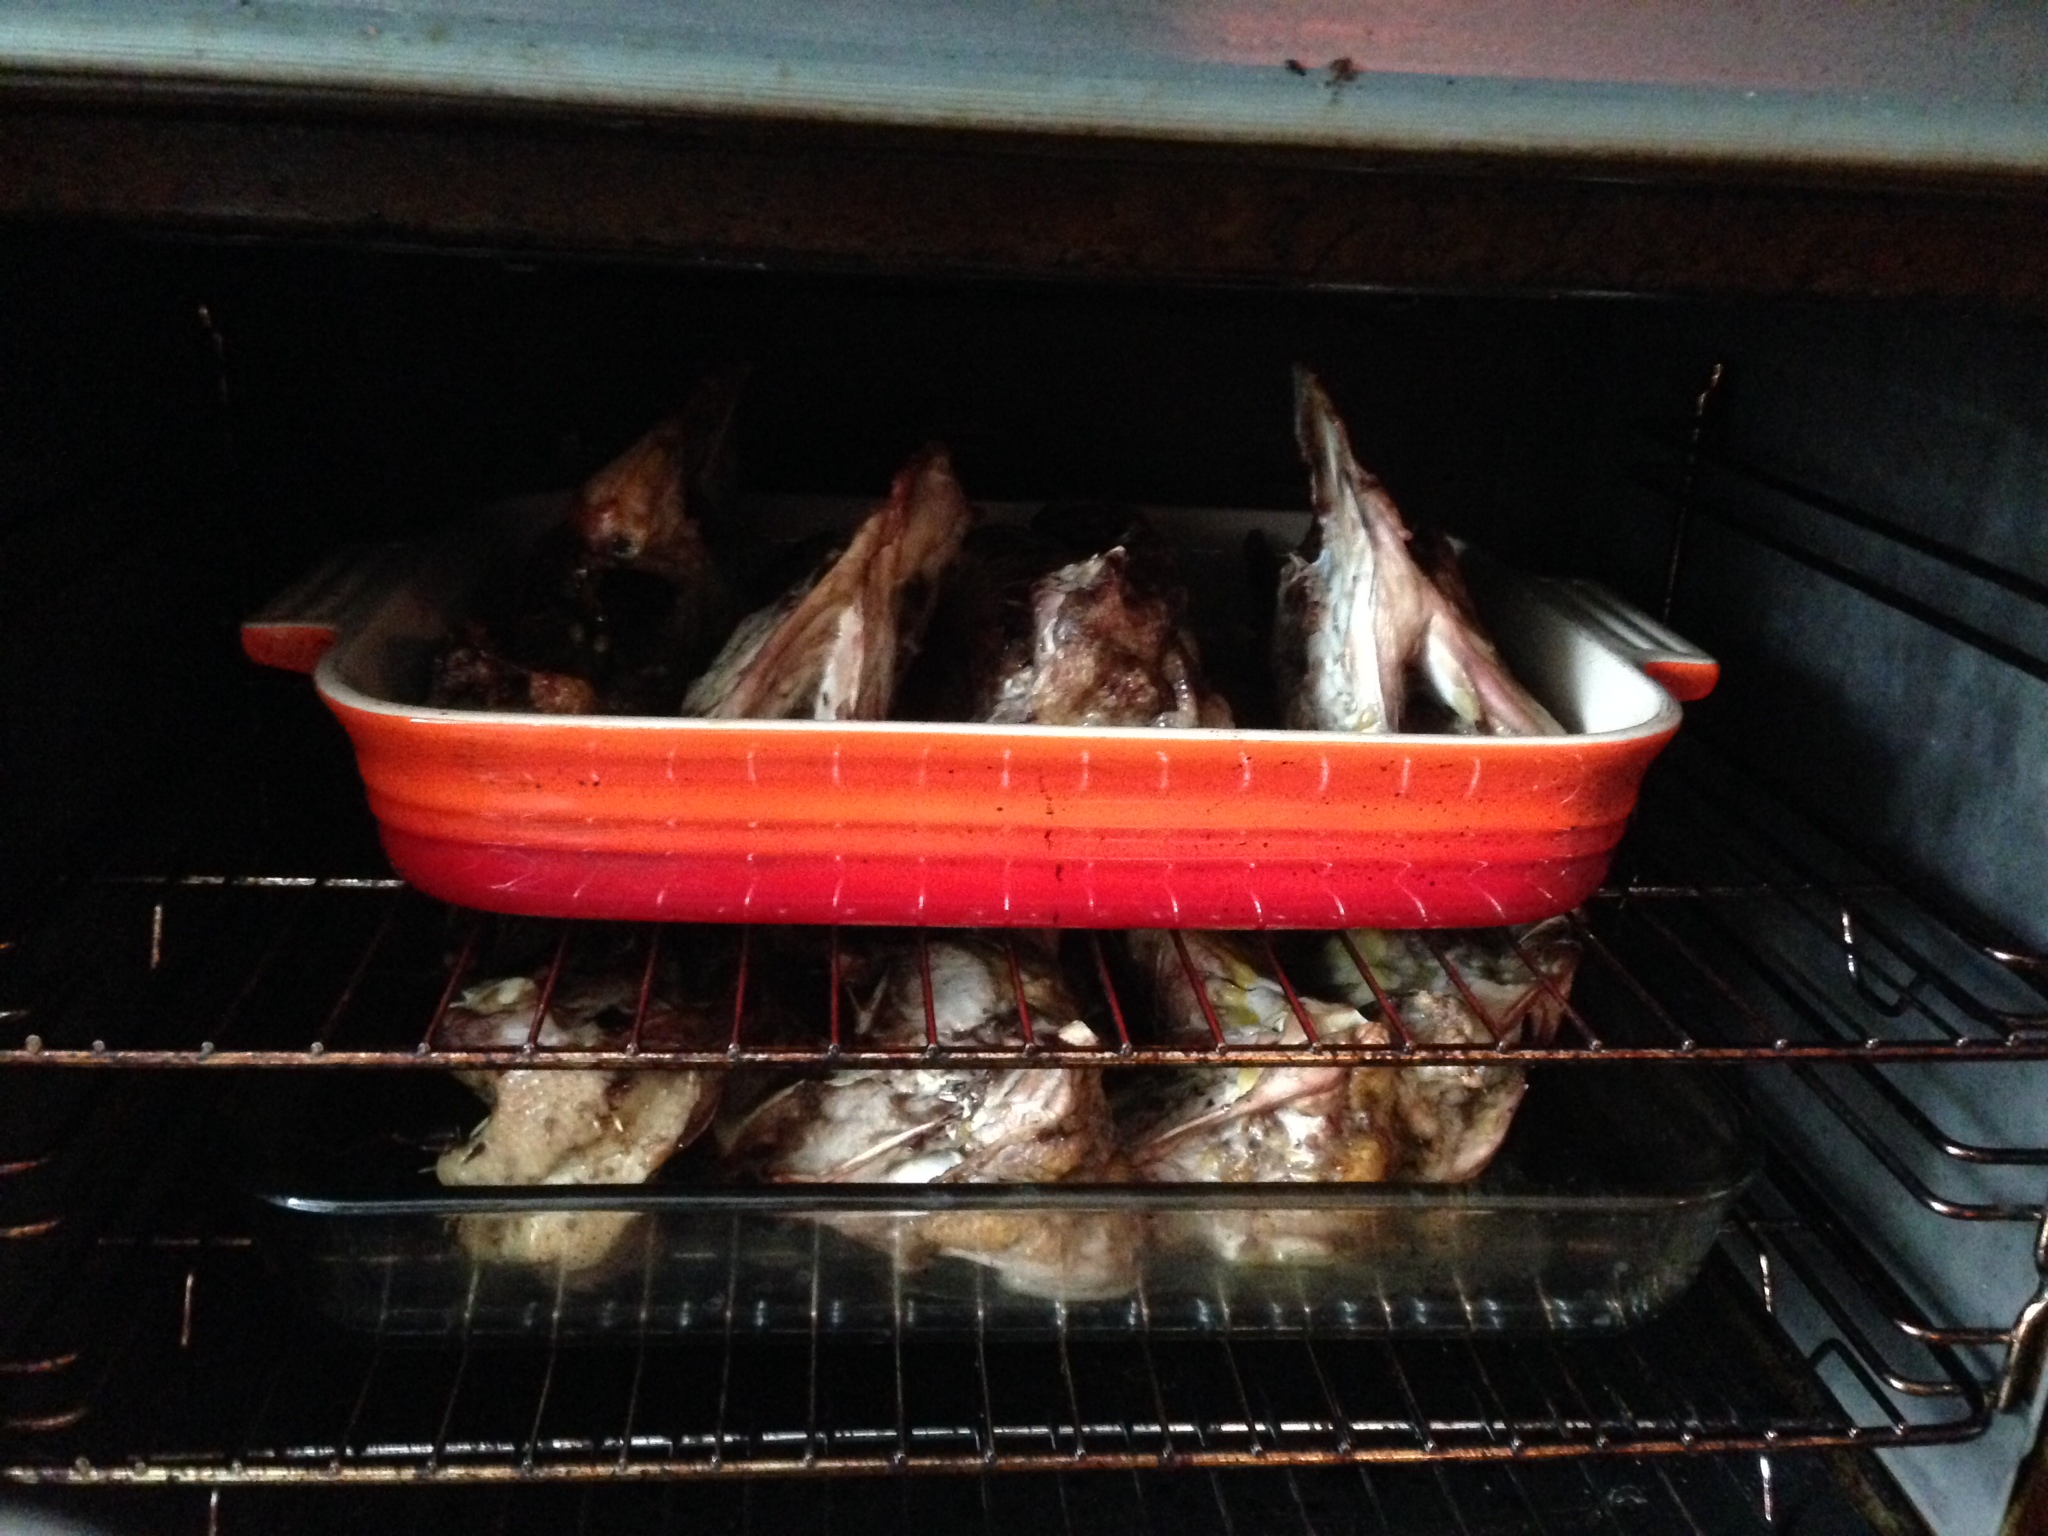 Several chicken carcasses roasting in the oven